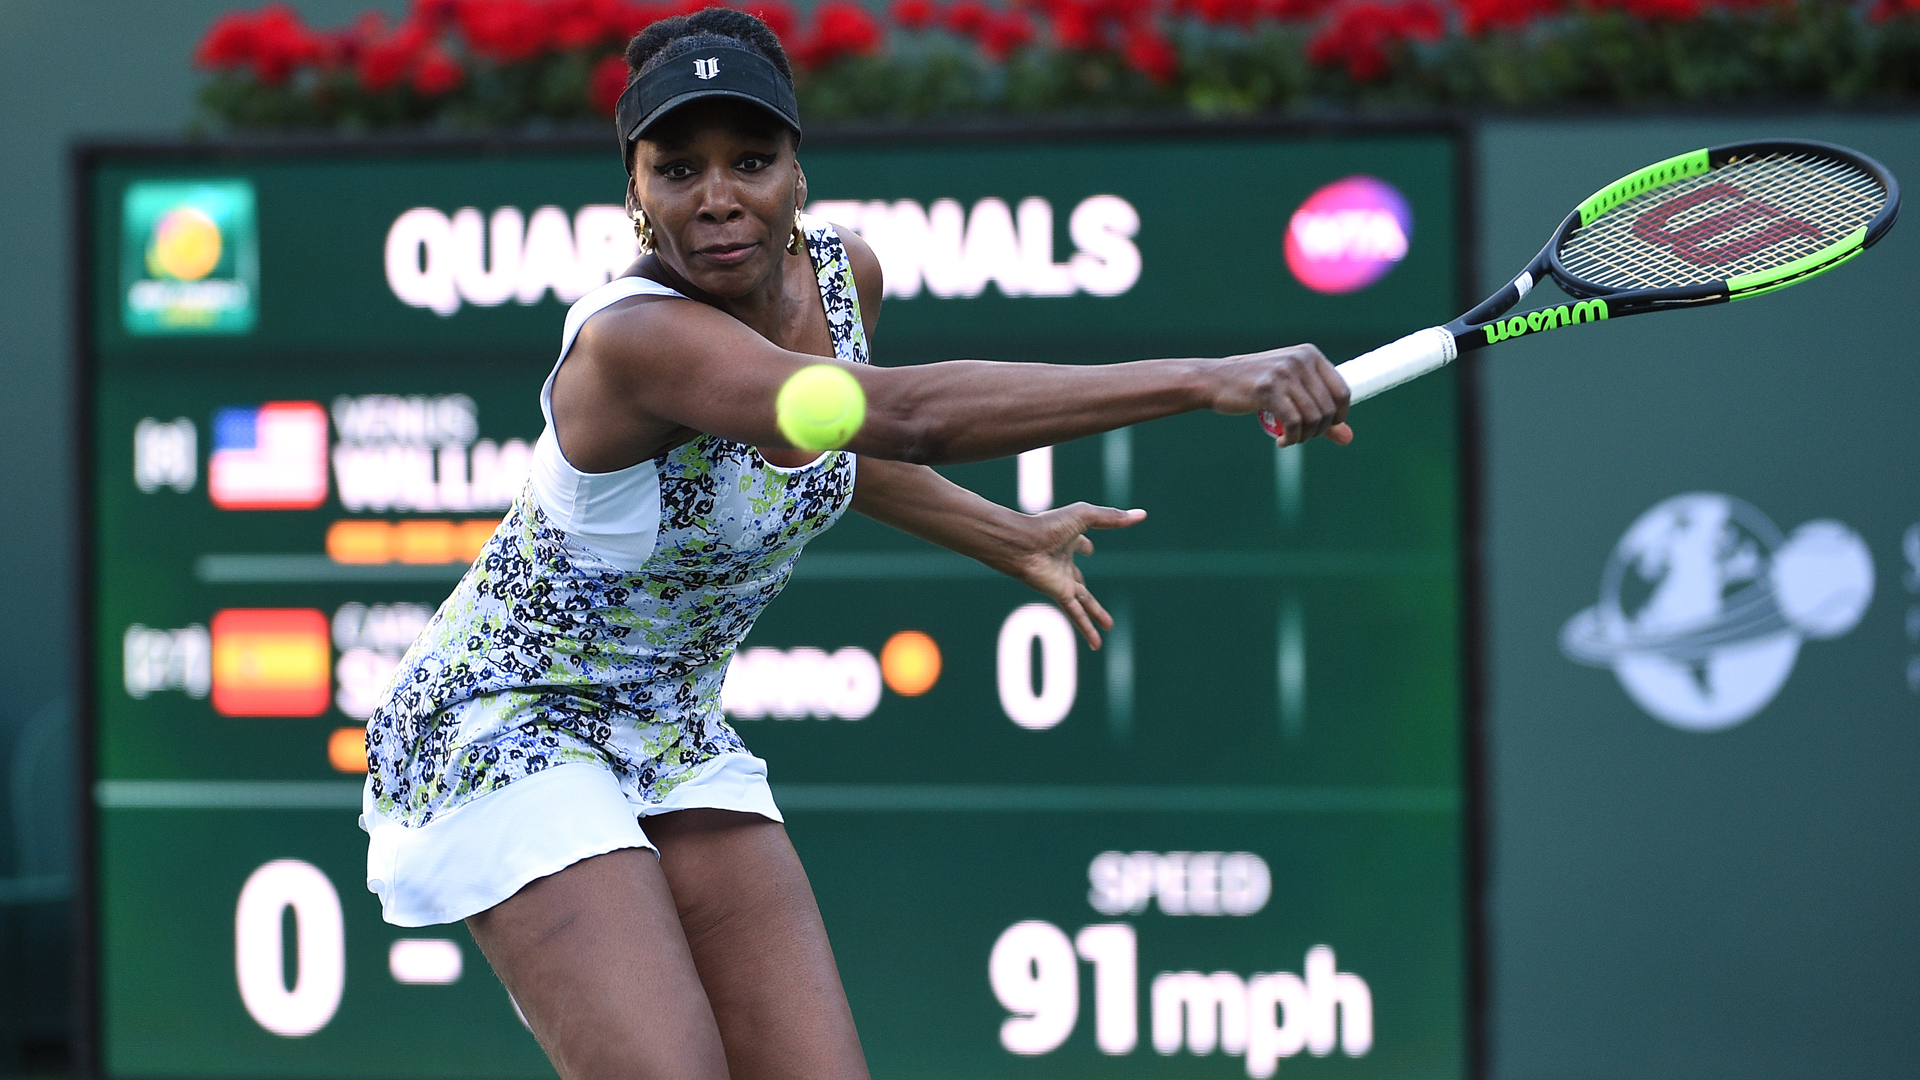 Venus Williams reaches semifinals at Indian Wells